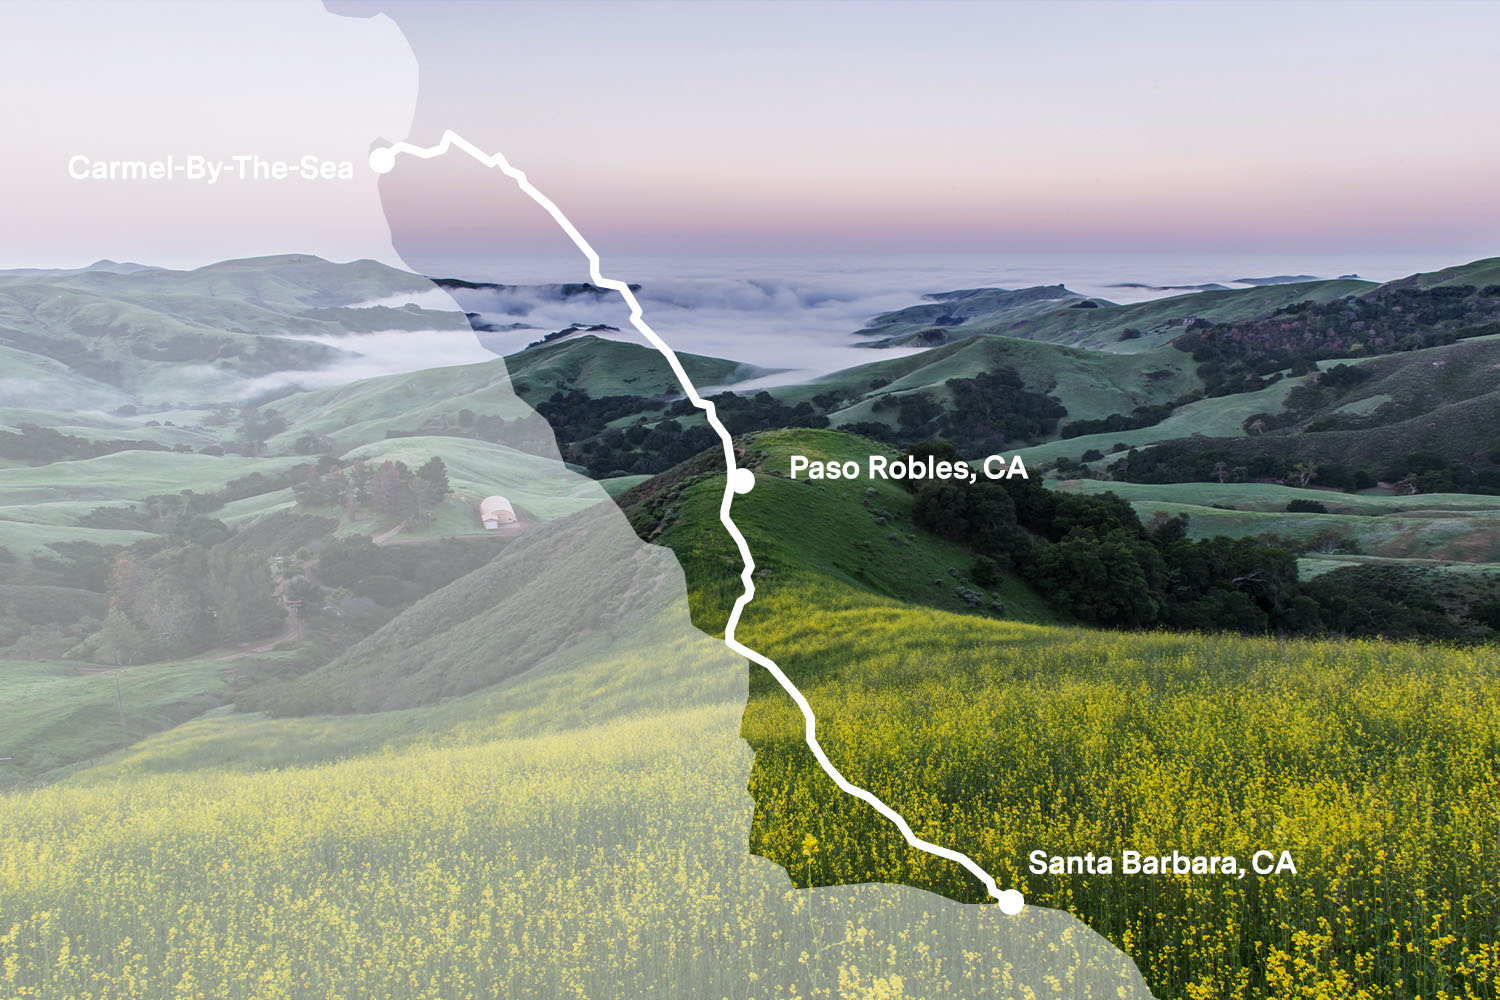 The Best Scenic Drive in Central California is US 101 in CA from Paso Robles to Carmel